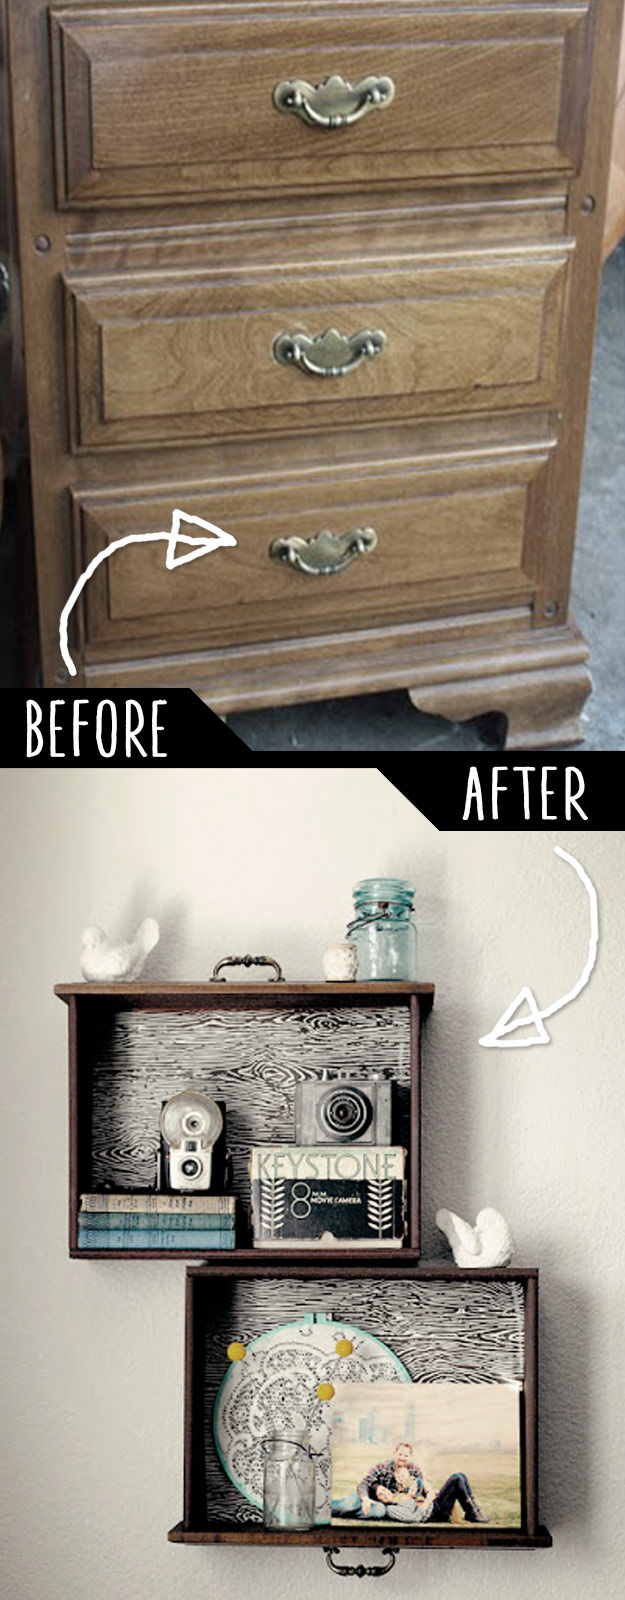 39 Clever Diy Furniture Hacks Diy Joy